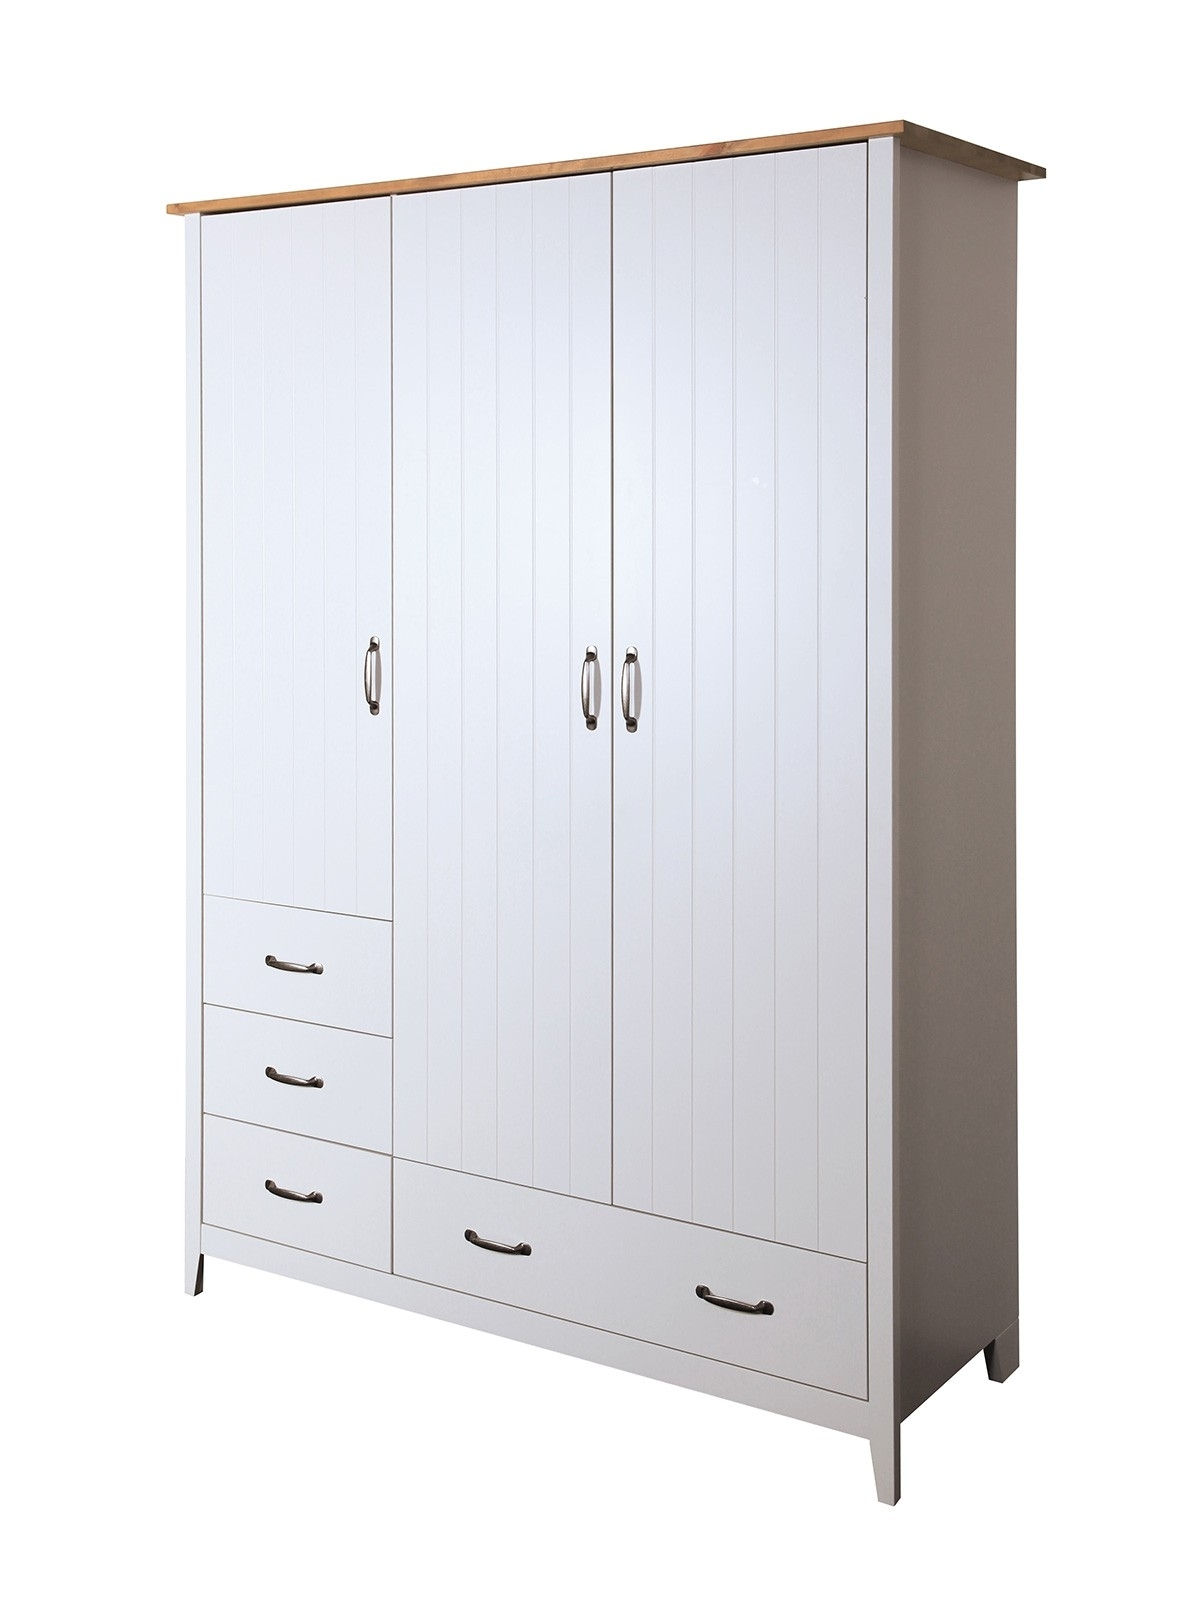 2017 Norfolk 3 Door Wardrobe Grey From The Original Factory Shop With Regard To 3 Door Wardrobes (View 5 of 15)